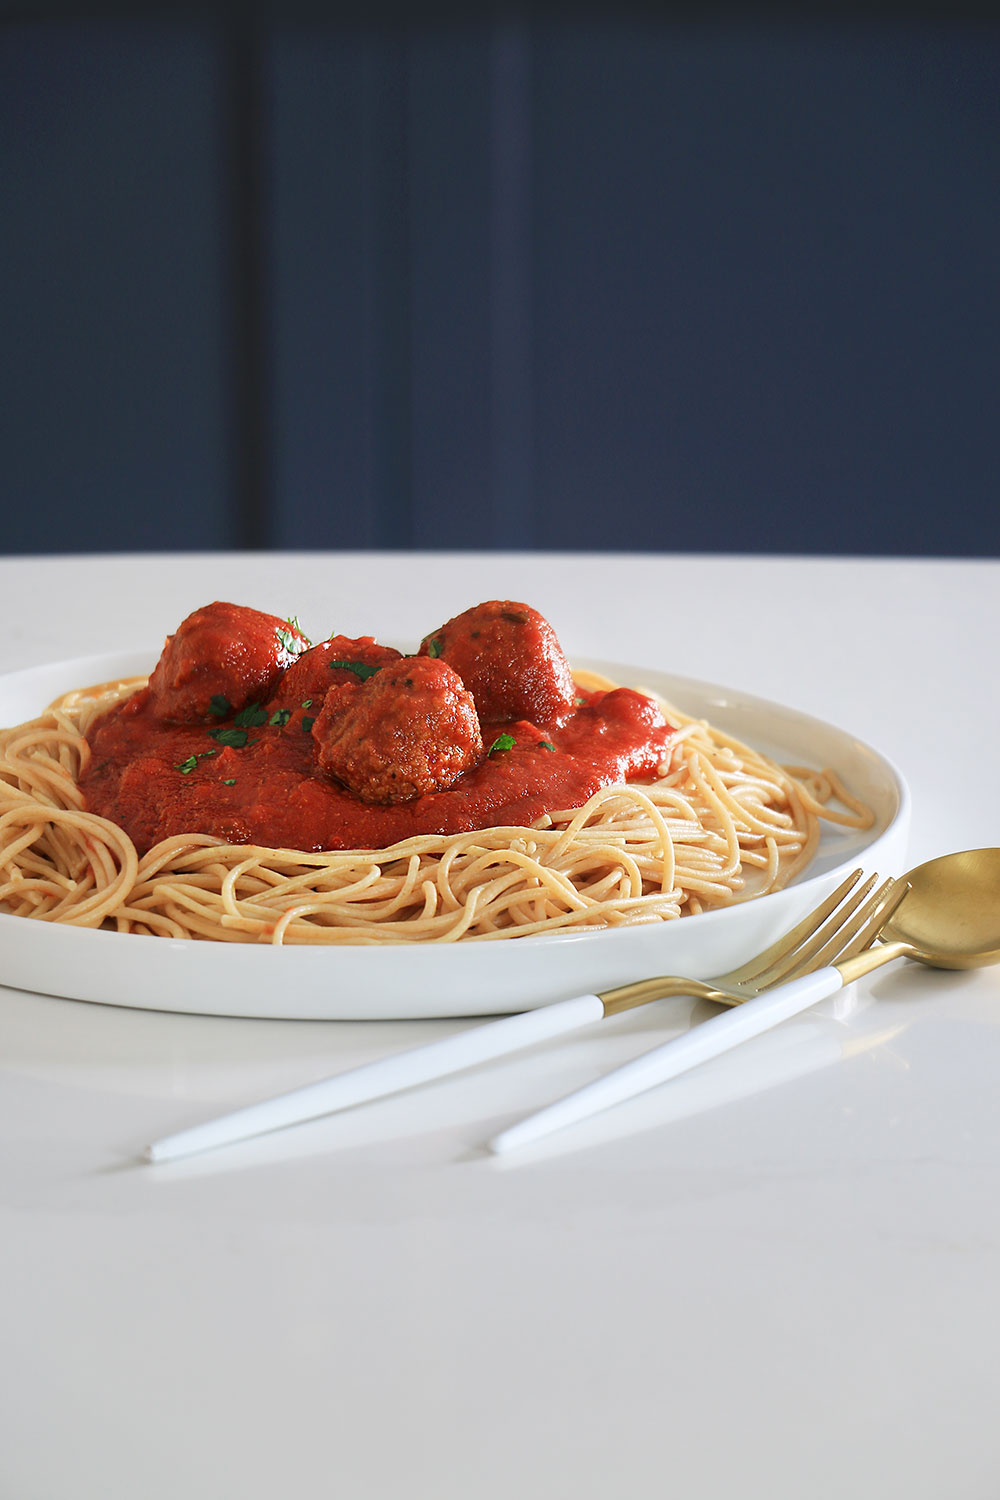 Spaghetti with sauce and meatballs